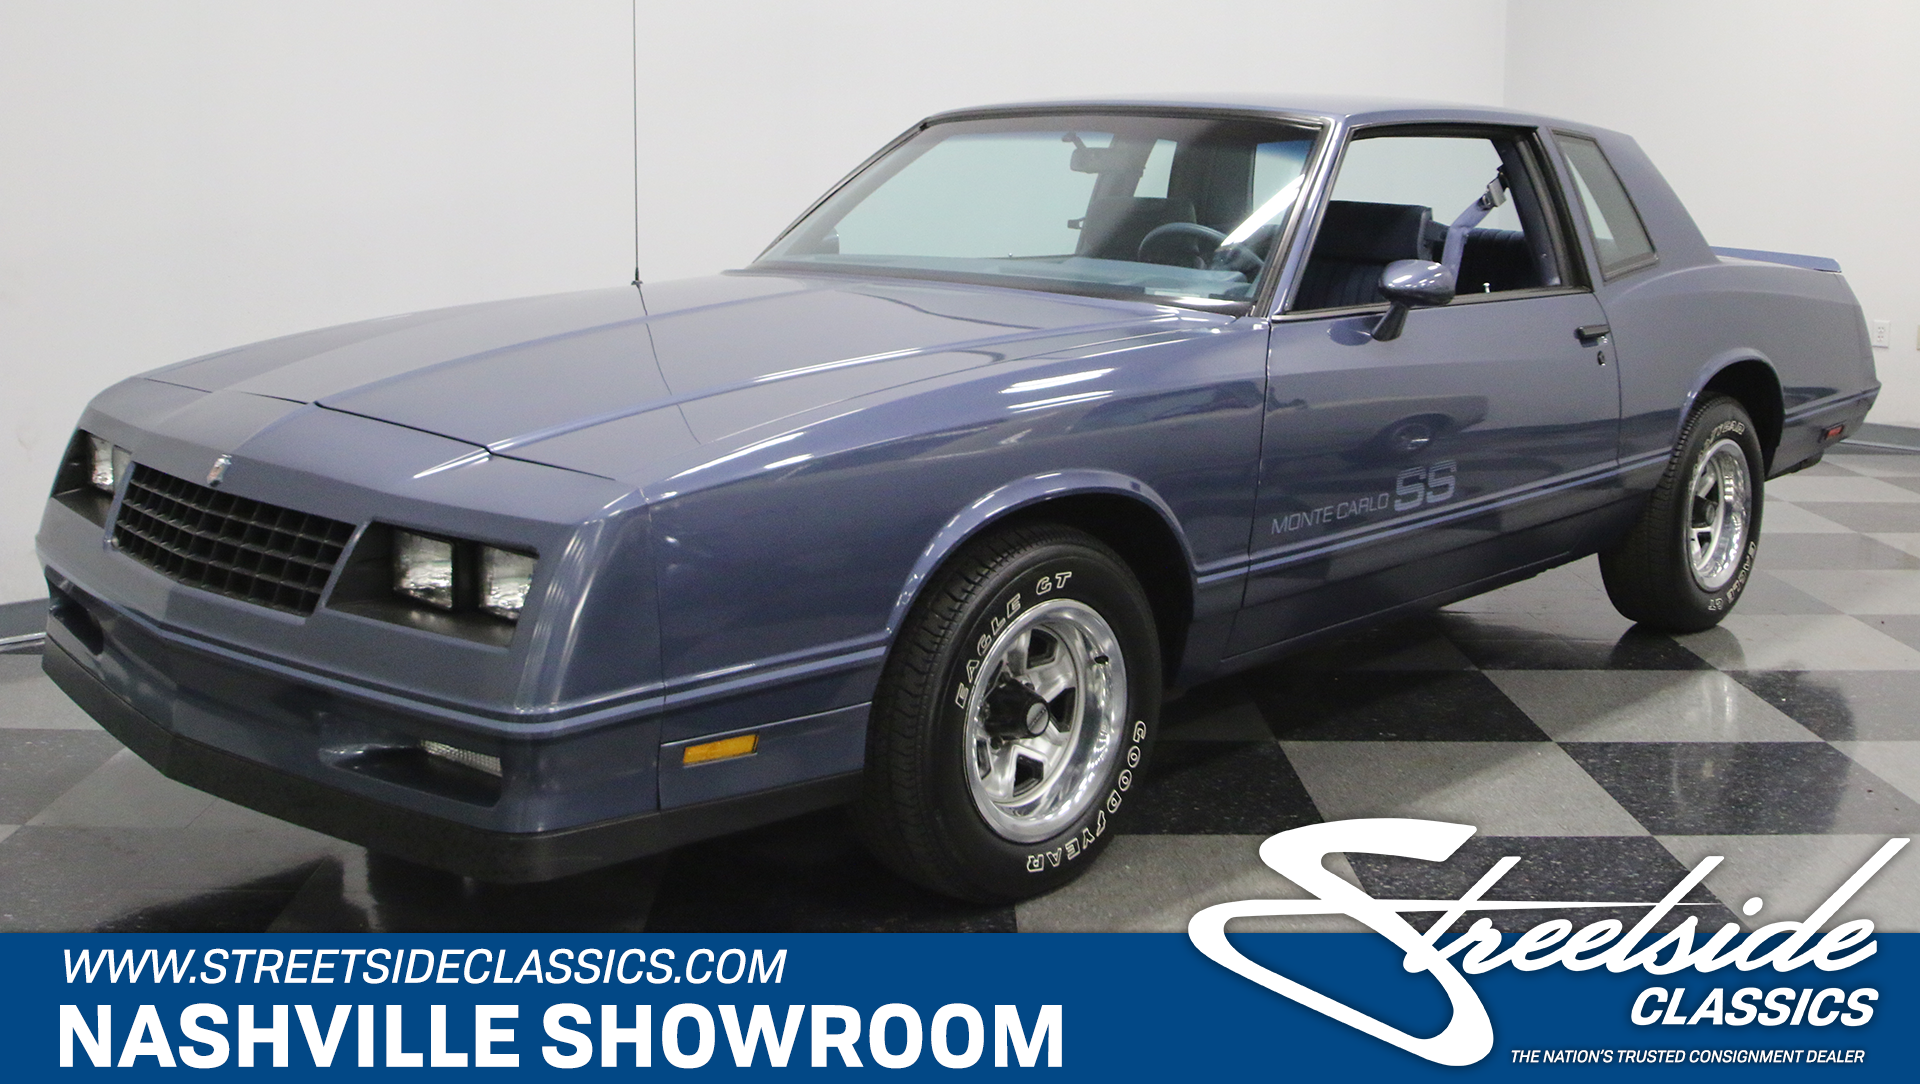 8889269b76f2f9_hd_1984-chevrolet-monte-carlo-ss Take A Look About 1980 Monte Carlo for Sale with Mesmerizing Photos Cars Review